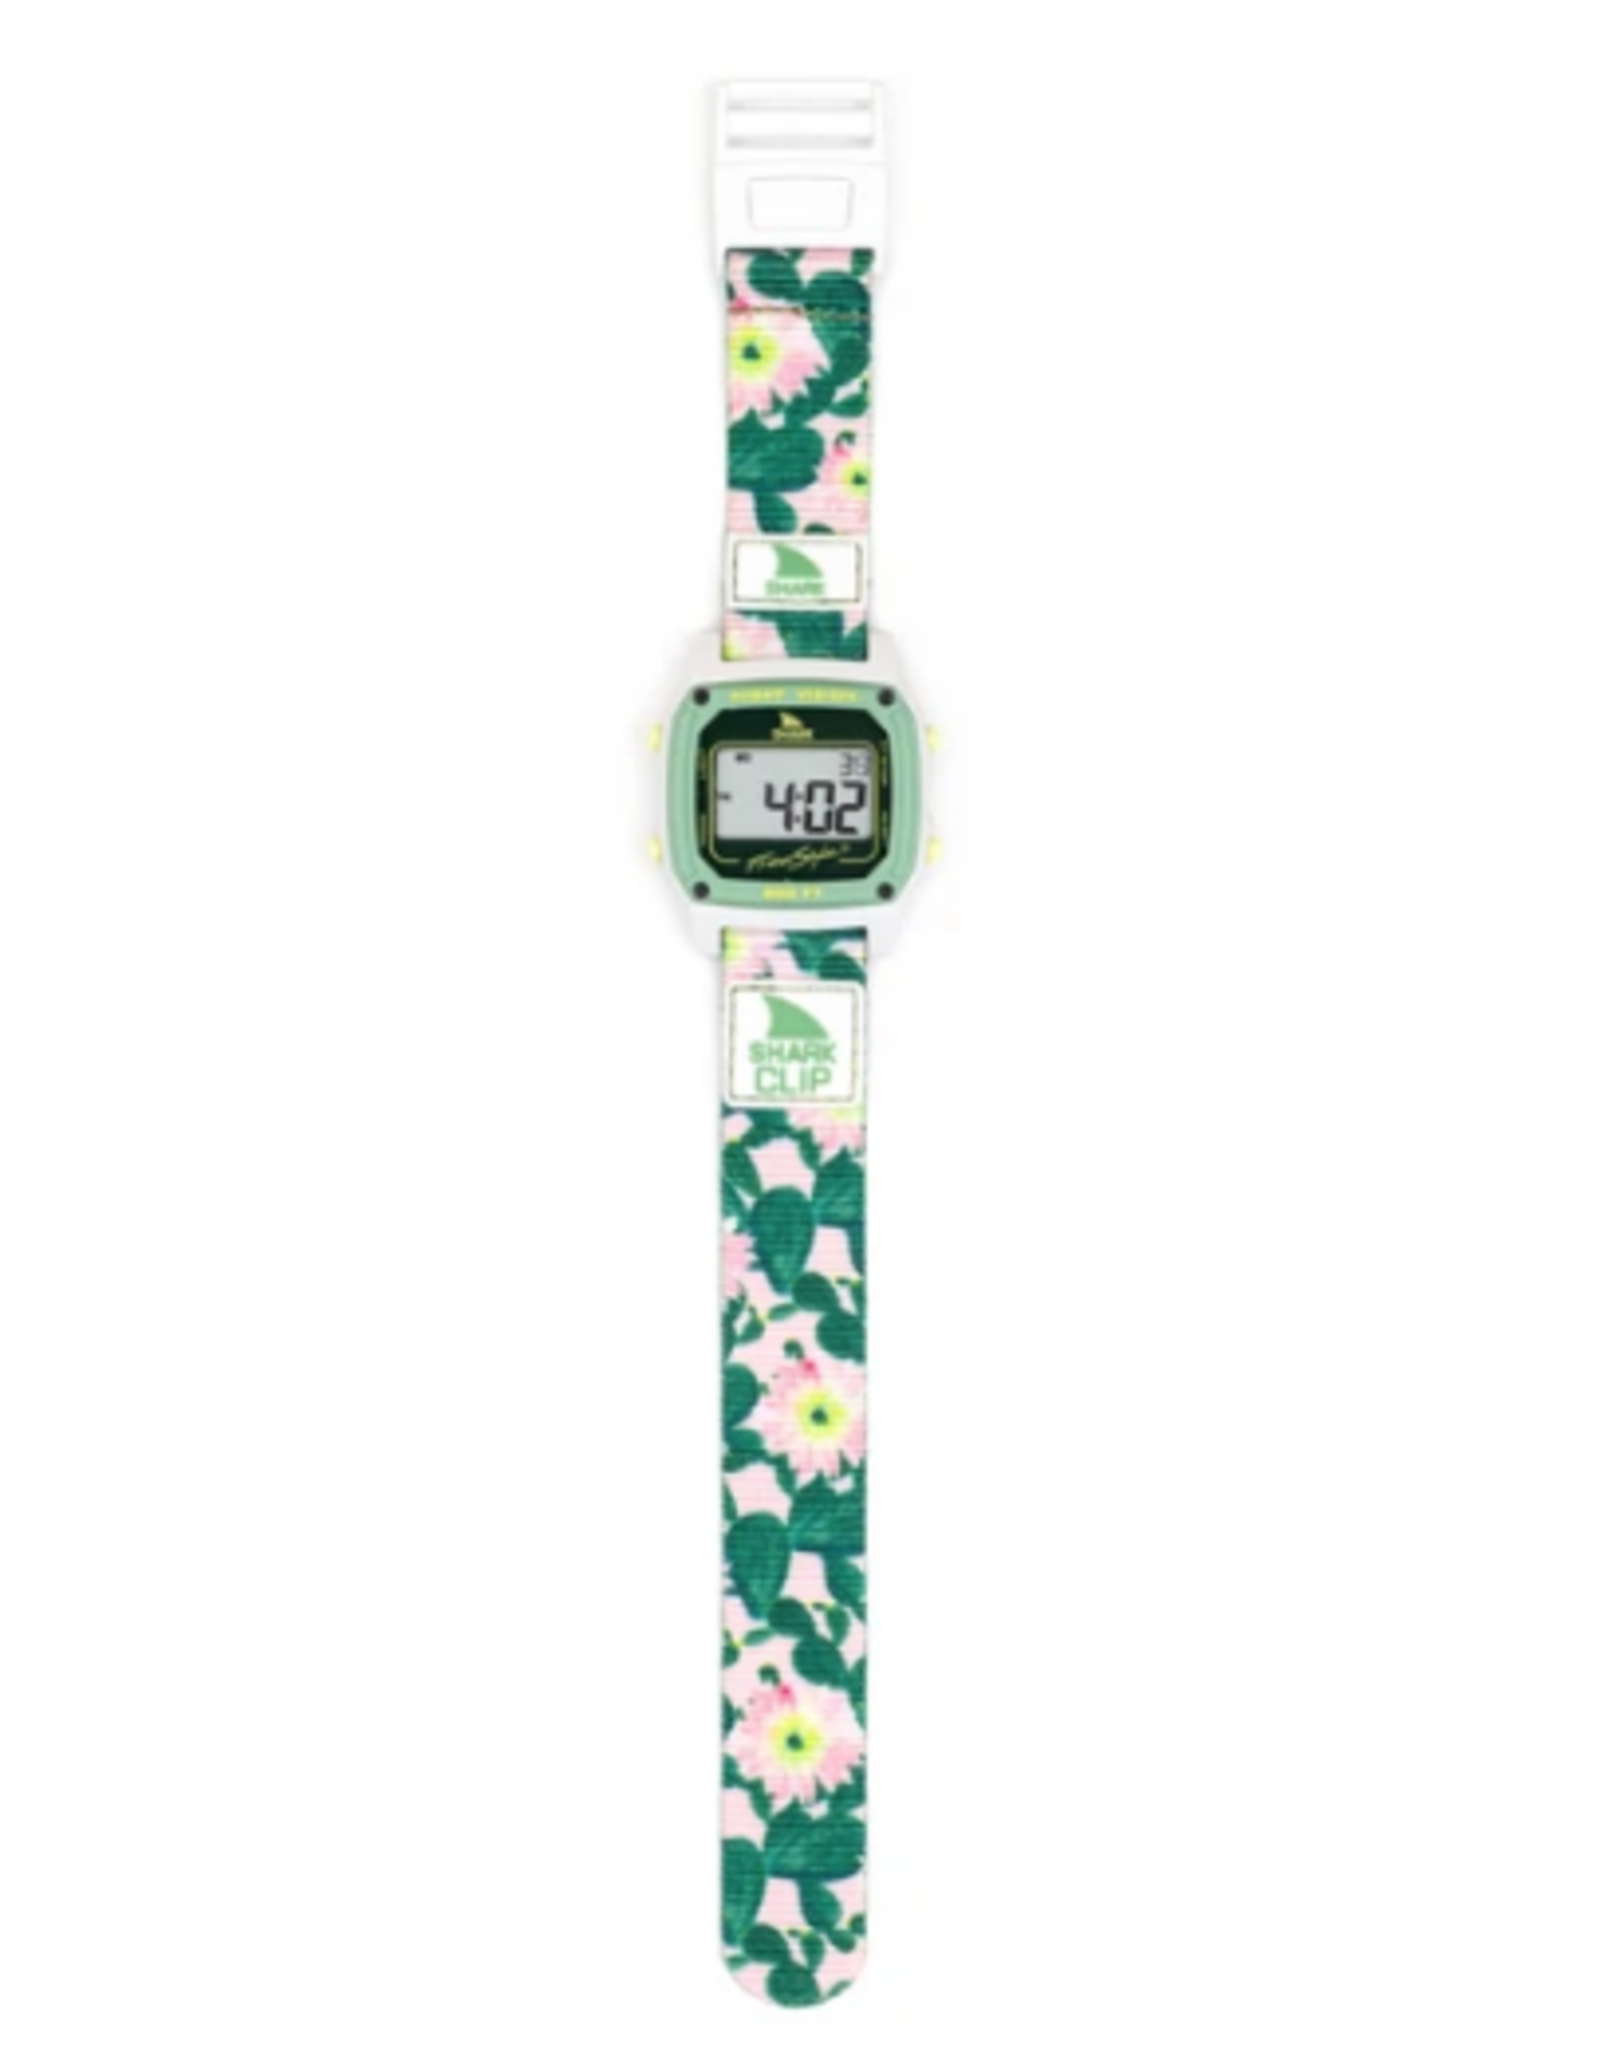 FREESTYLE FREESTYLE SHARK CLASSIC CLIP PRICKLY PEAR GREEN WATCH